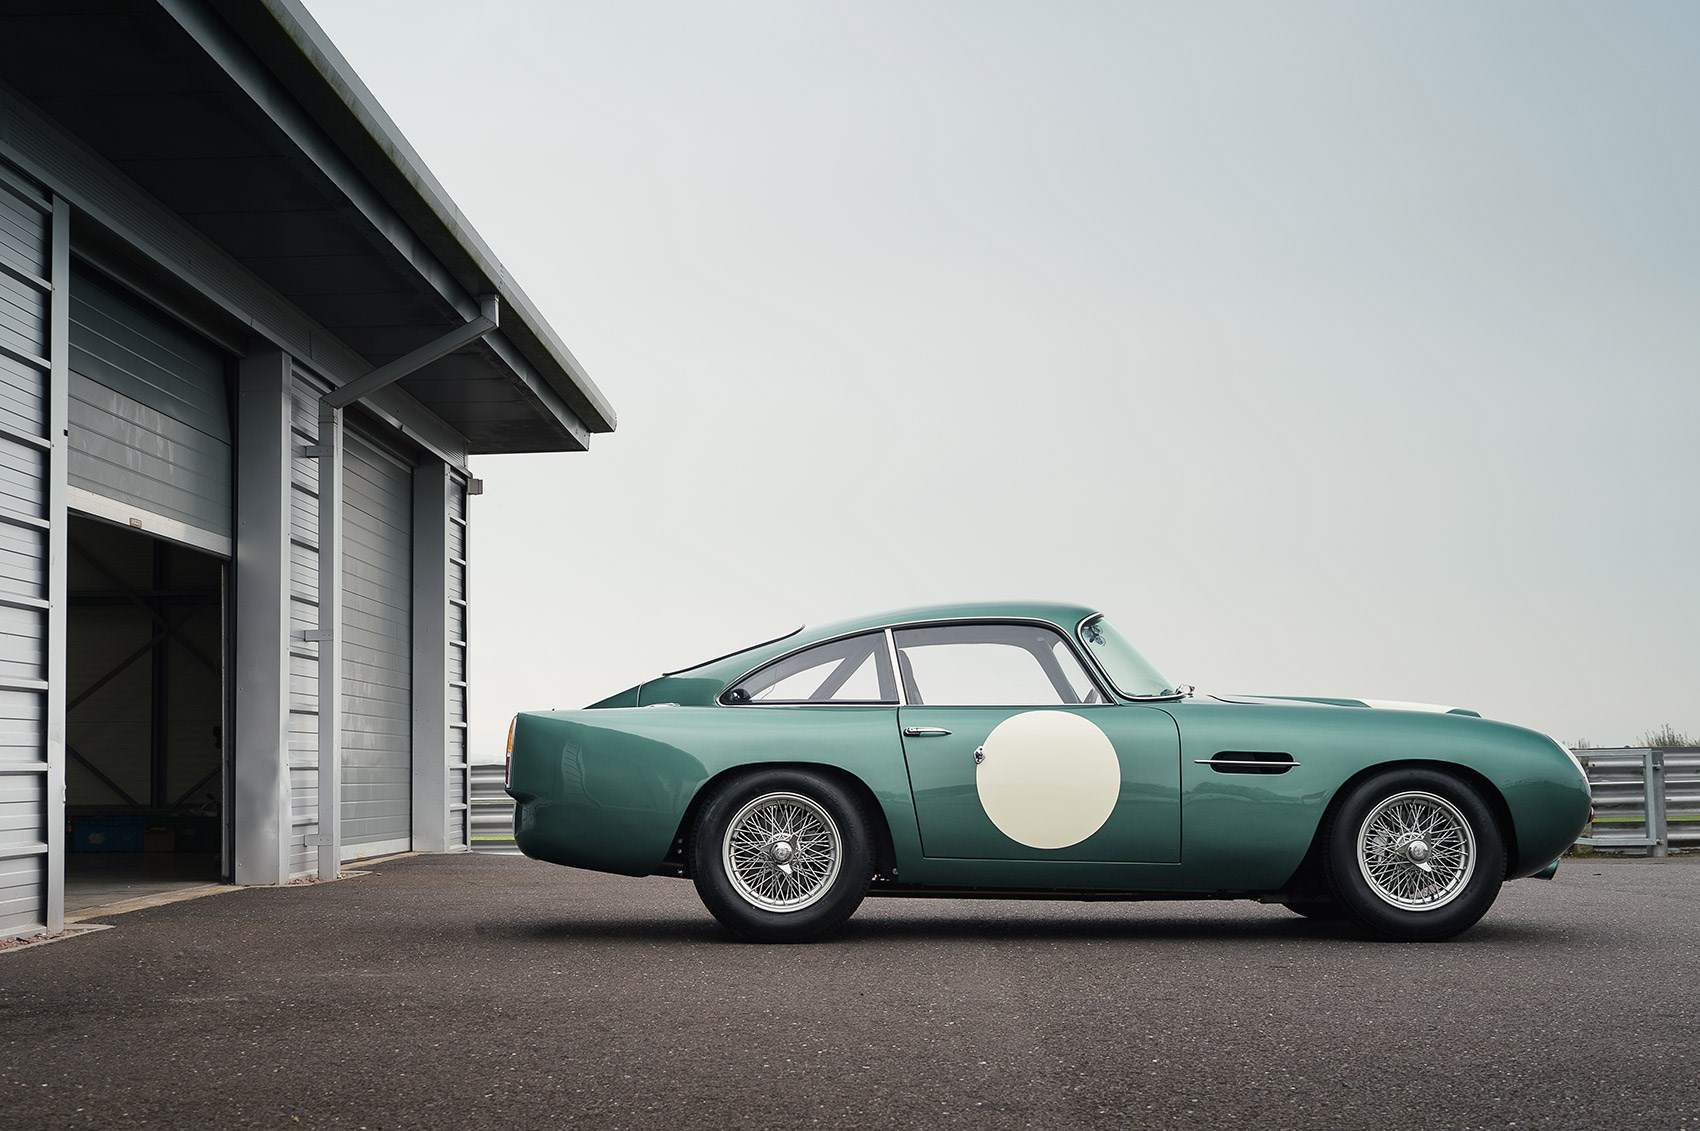 New 2018 Aston Martin DB4 GT Continuation: review, specs, performance figures, prices